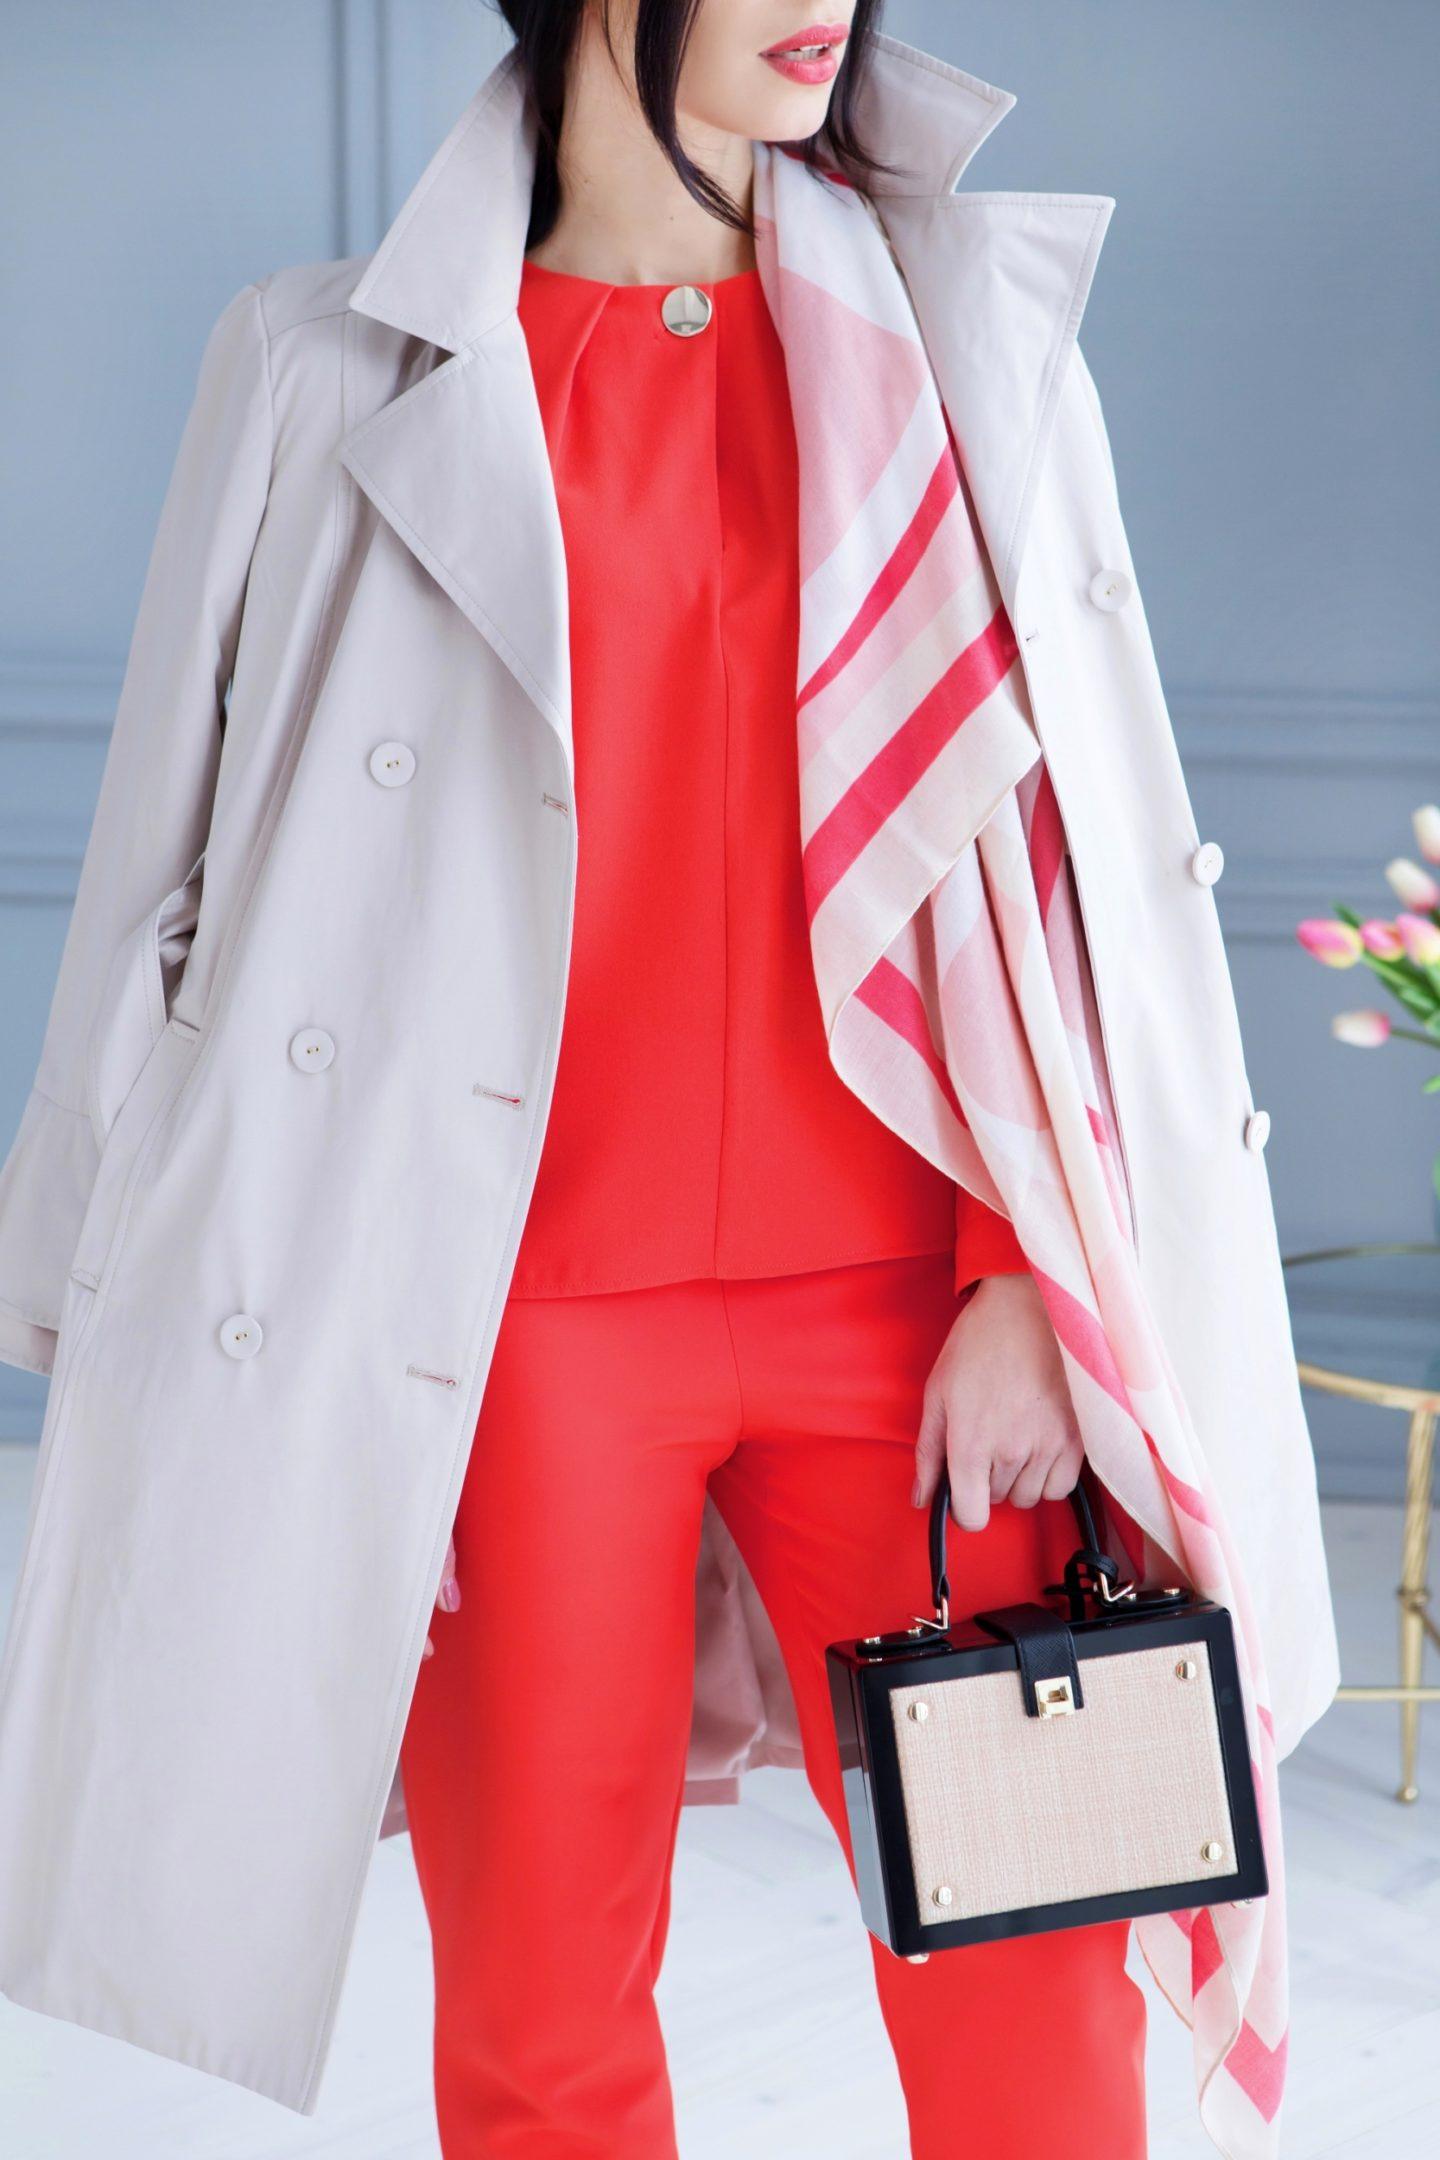 Ready for Spring with Pedro del Hierro